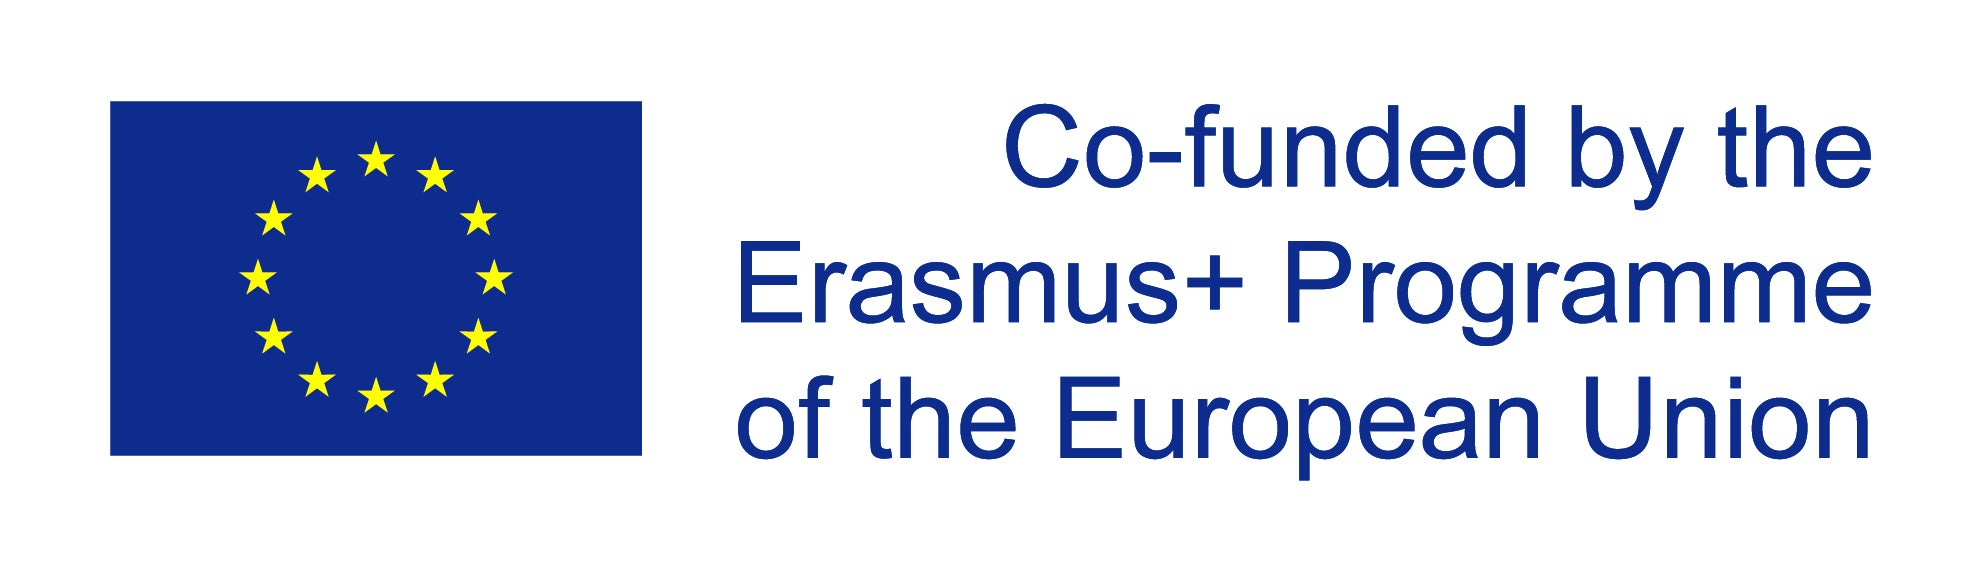 EU Logo - Project Co-funded by the Erasmus+ Programme of the European Union